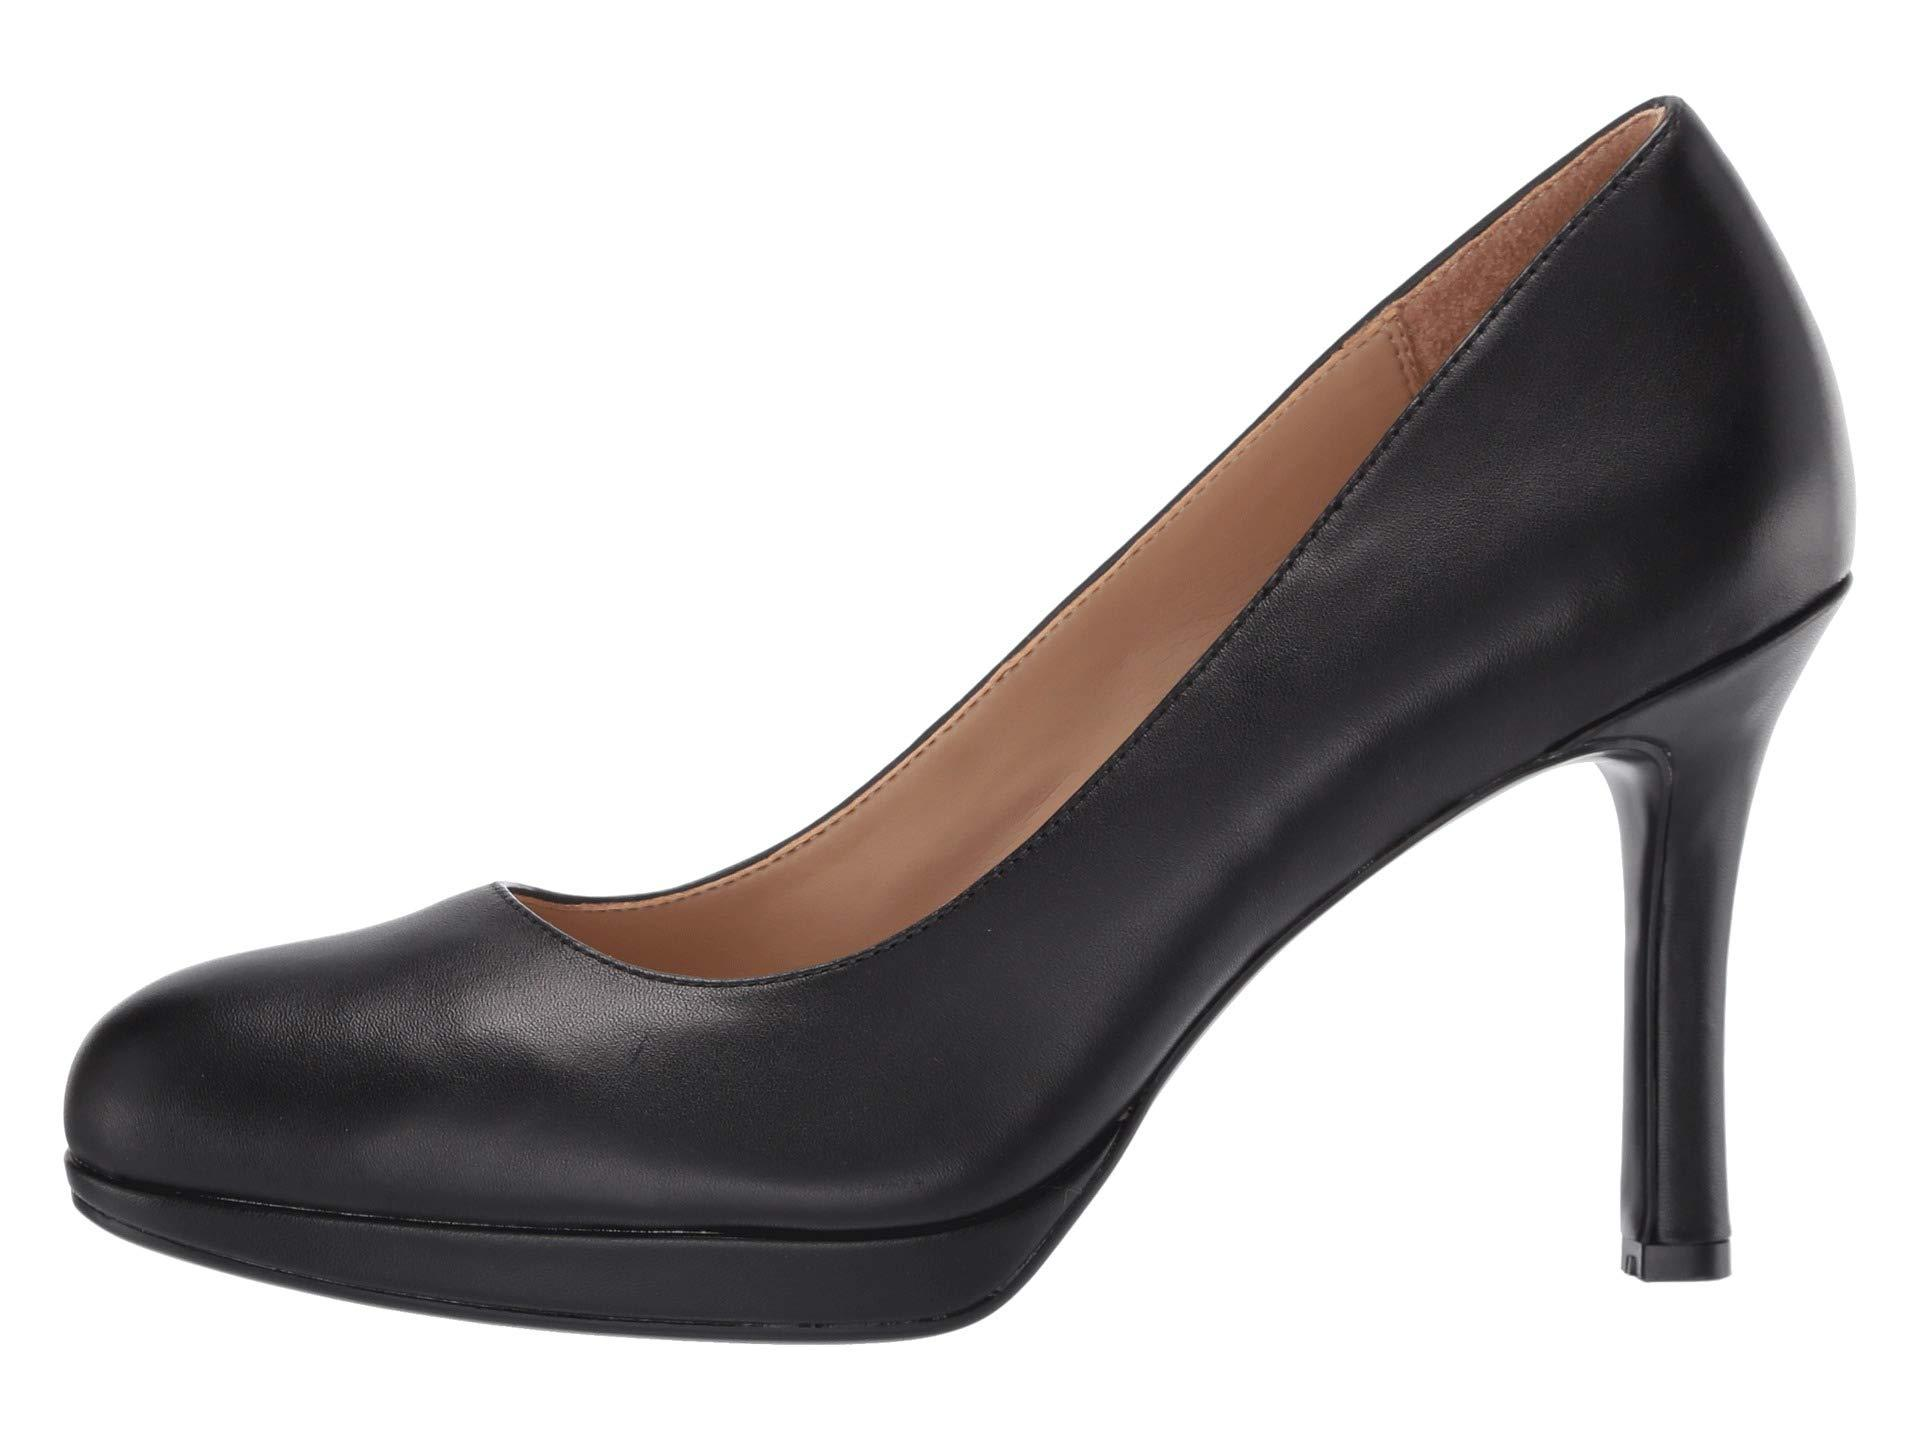 529e1c8b984 Naturalizer Celina (black Leather) Women's 1-2 Inch Heel Shoes in ...